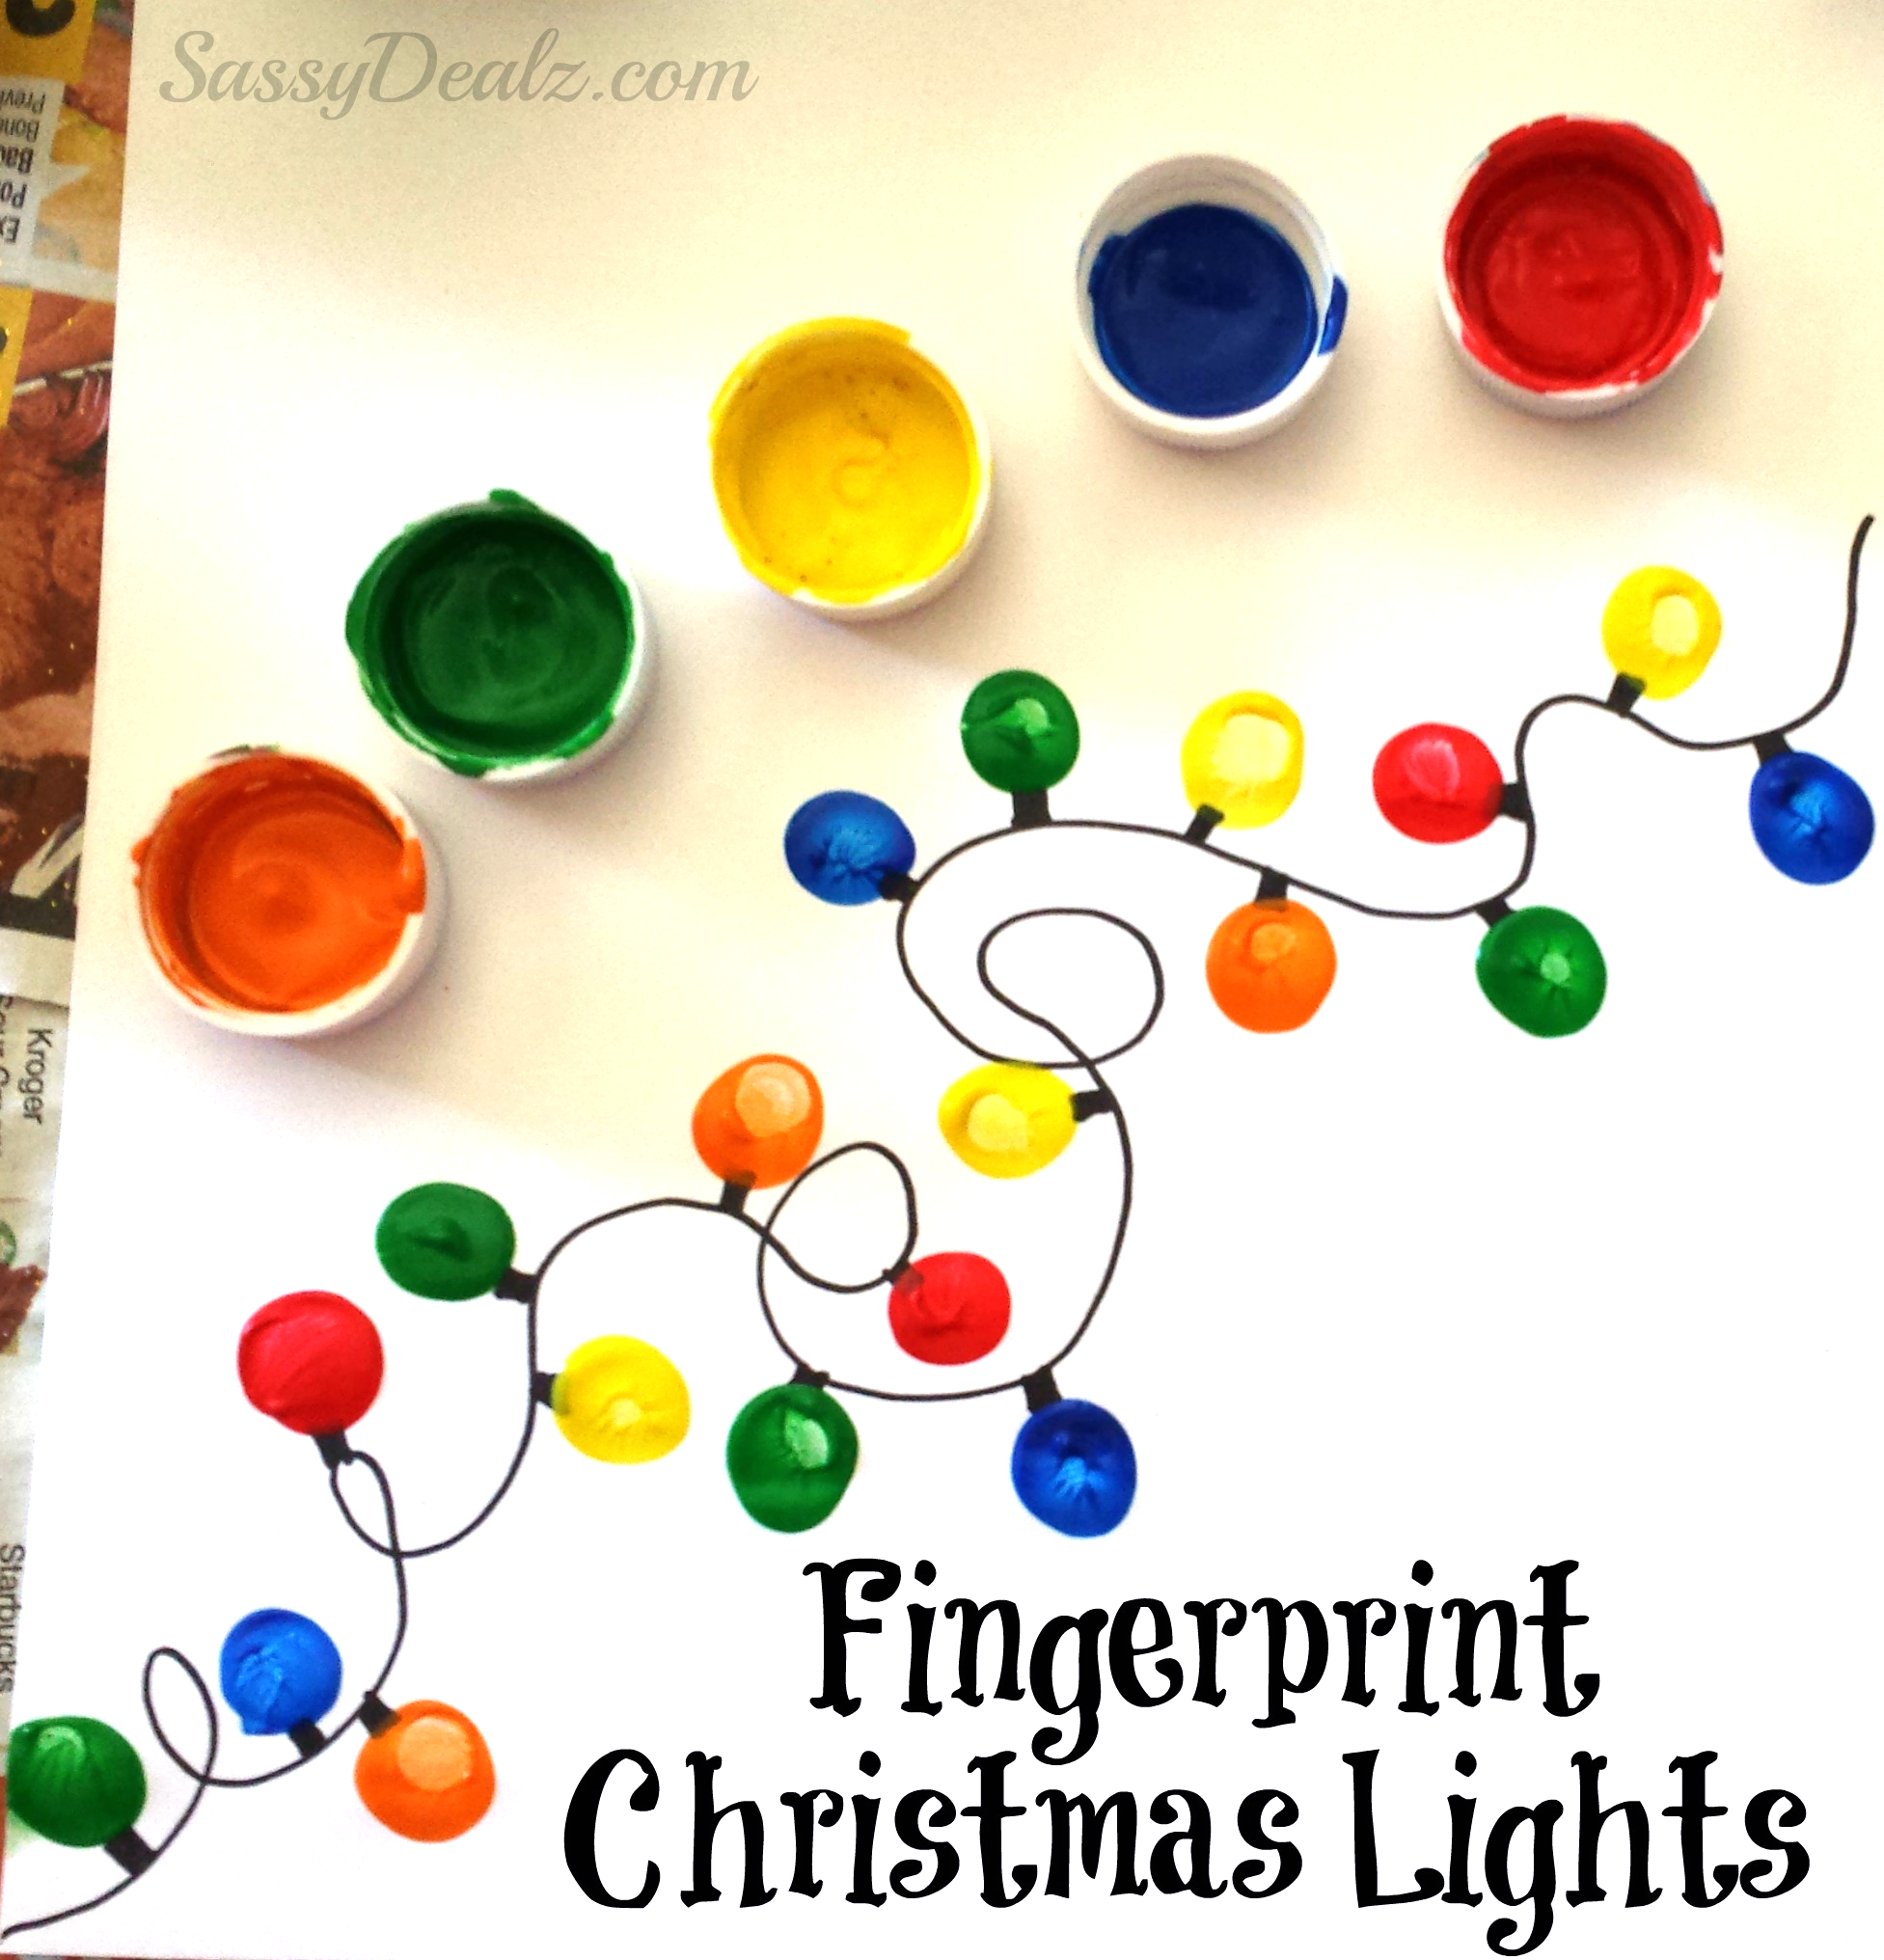 Paper Craft Christmas Card Ideas Part - 25: Just Have The Child Dip Their Pointer Finger In Different Colored Paints!  Super Cute Christmas Craft For Kids To Make Handmade Cards, Gift Tags, ...